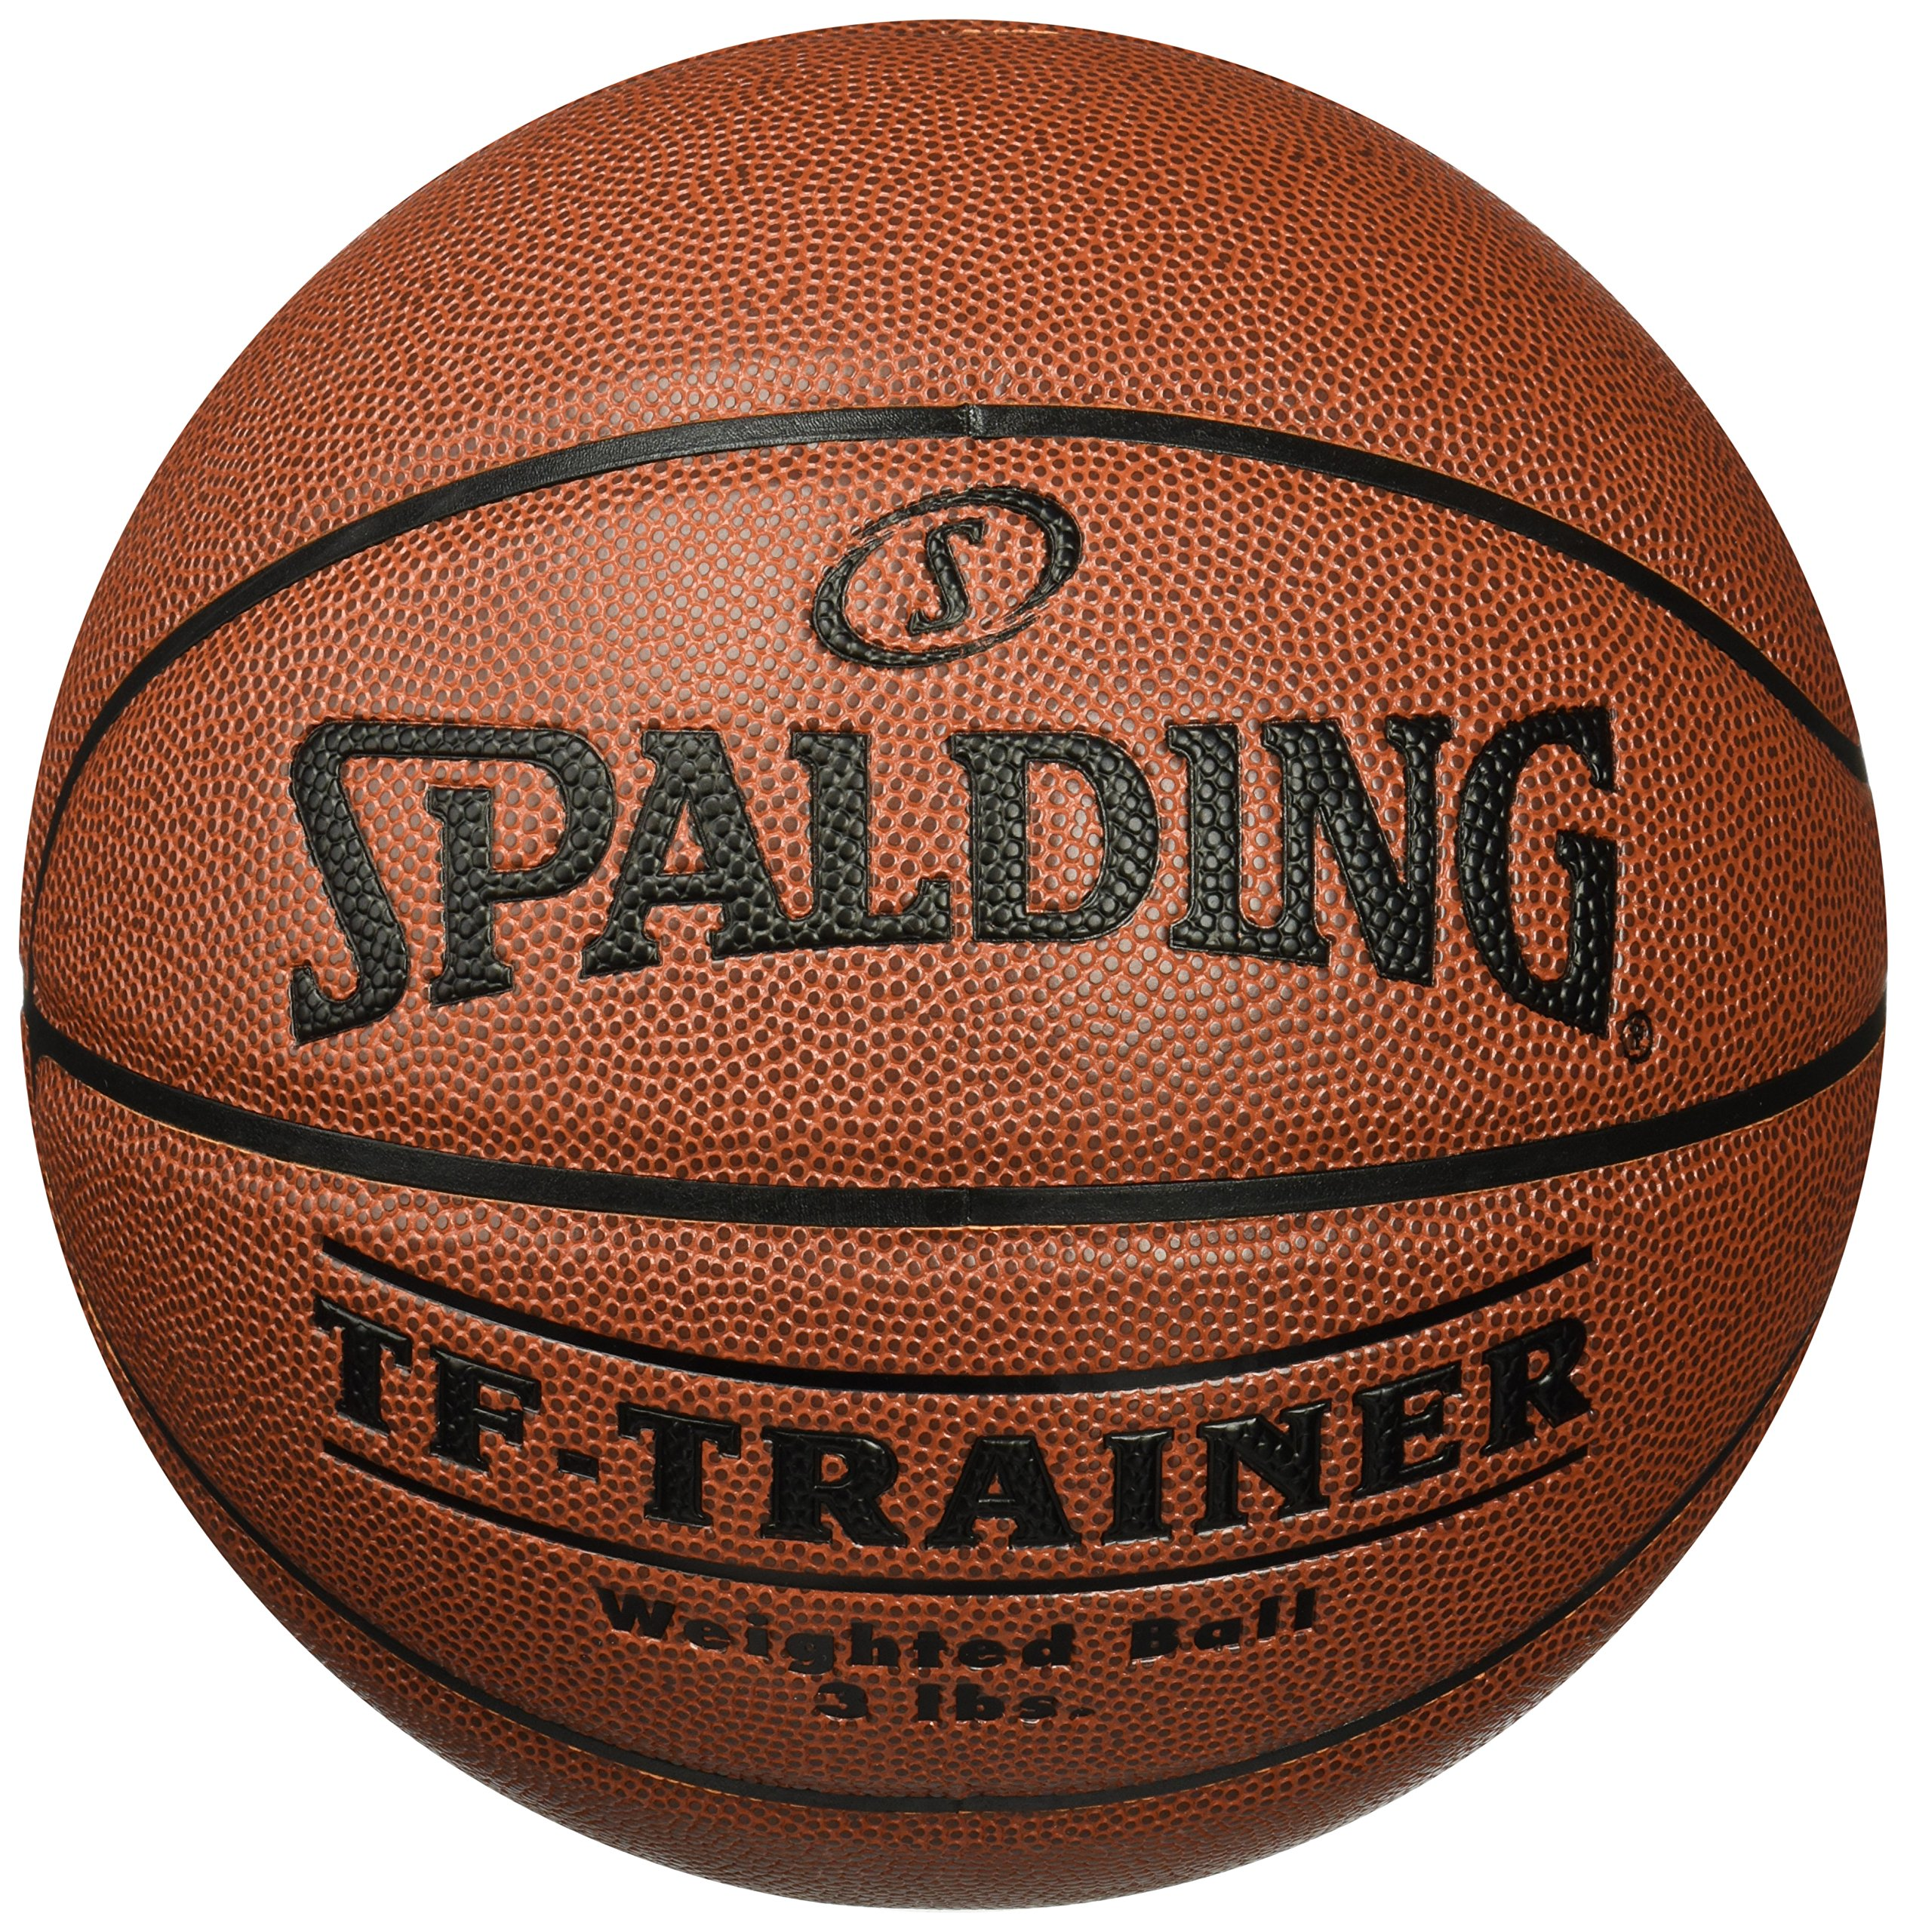 Spalding TF-Trainer Weighted Trainer Ball - 3lbs by Spalding